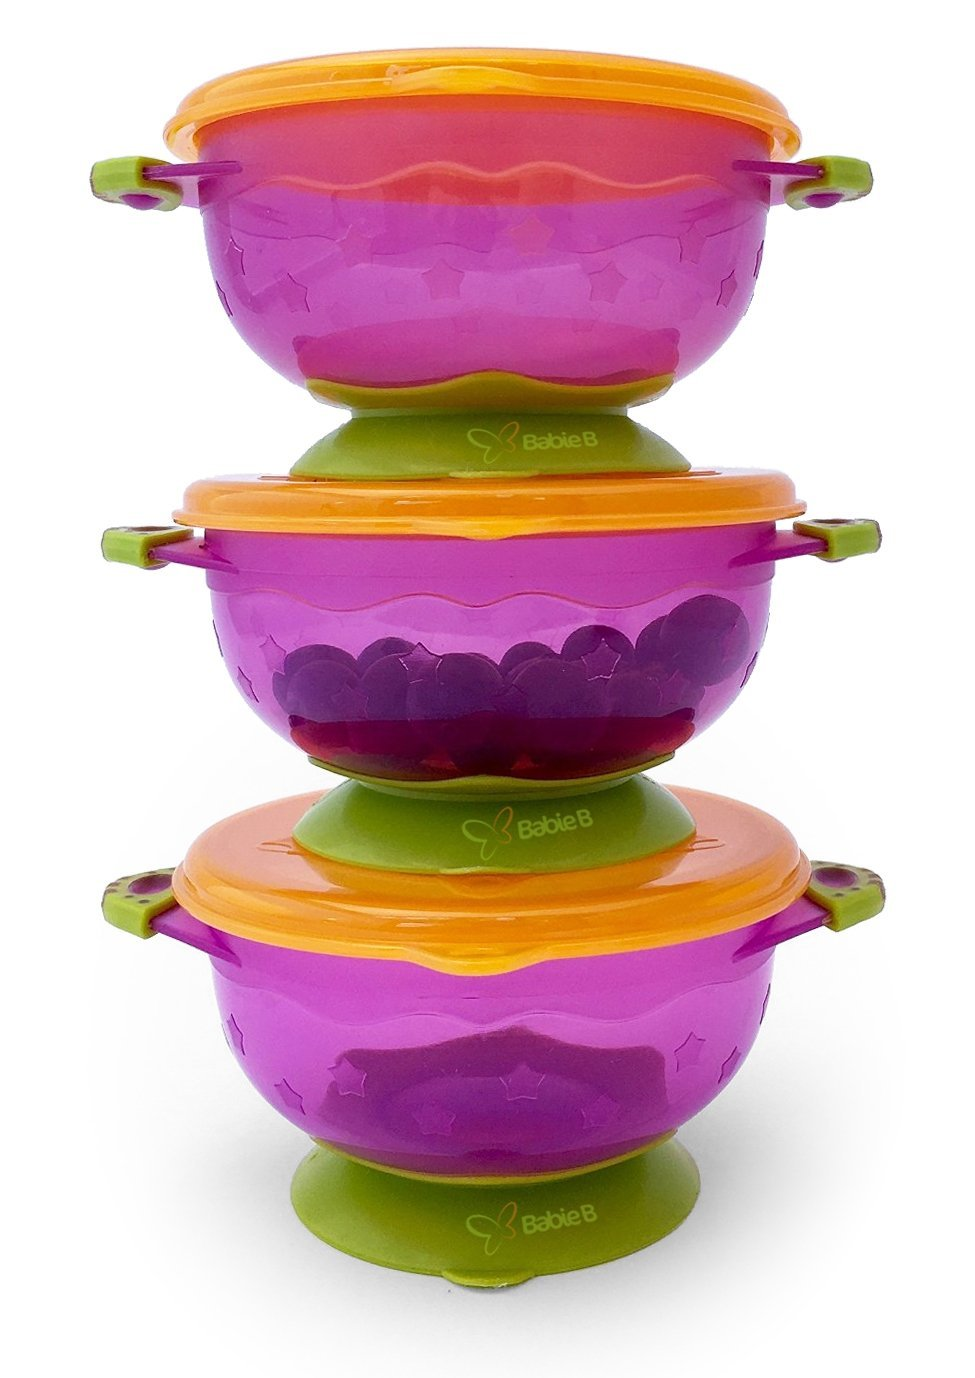 3 Small Size 1st Stage Suction Baby Bowls with Lids- Hold 6oz-Perfect To-Go Bowls for & Travel-BabieB by BabieB   B01G9DPBJ6